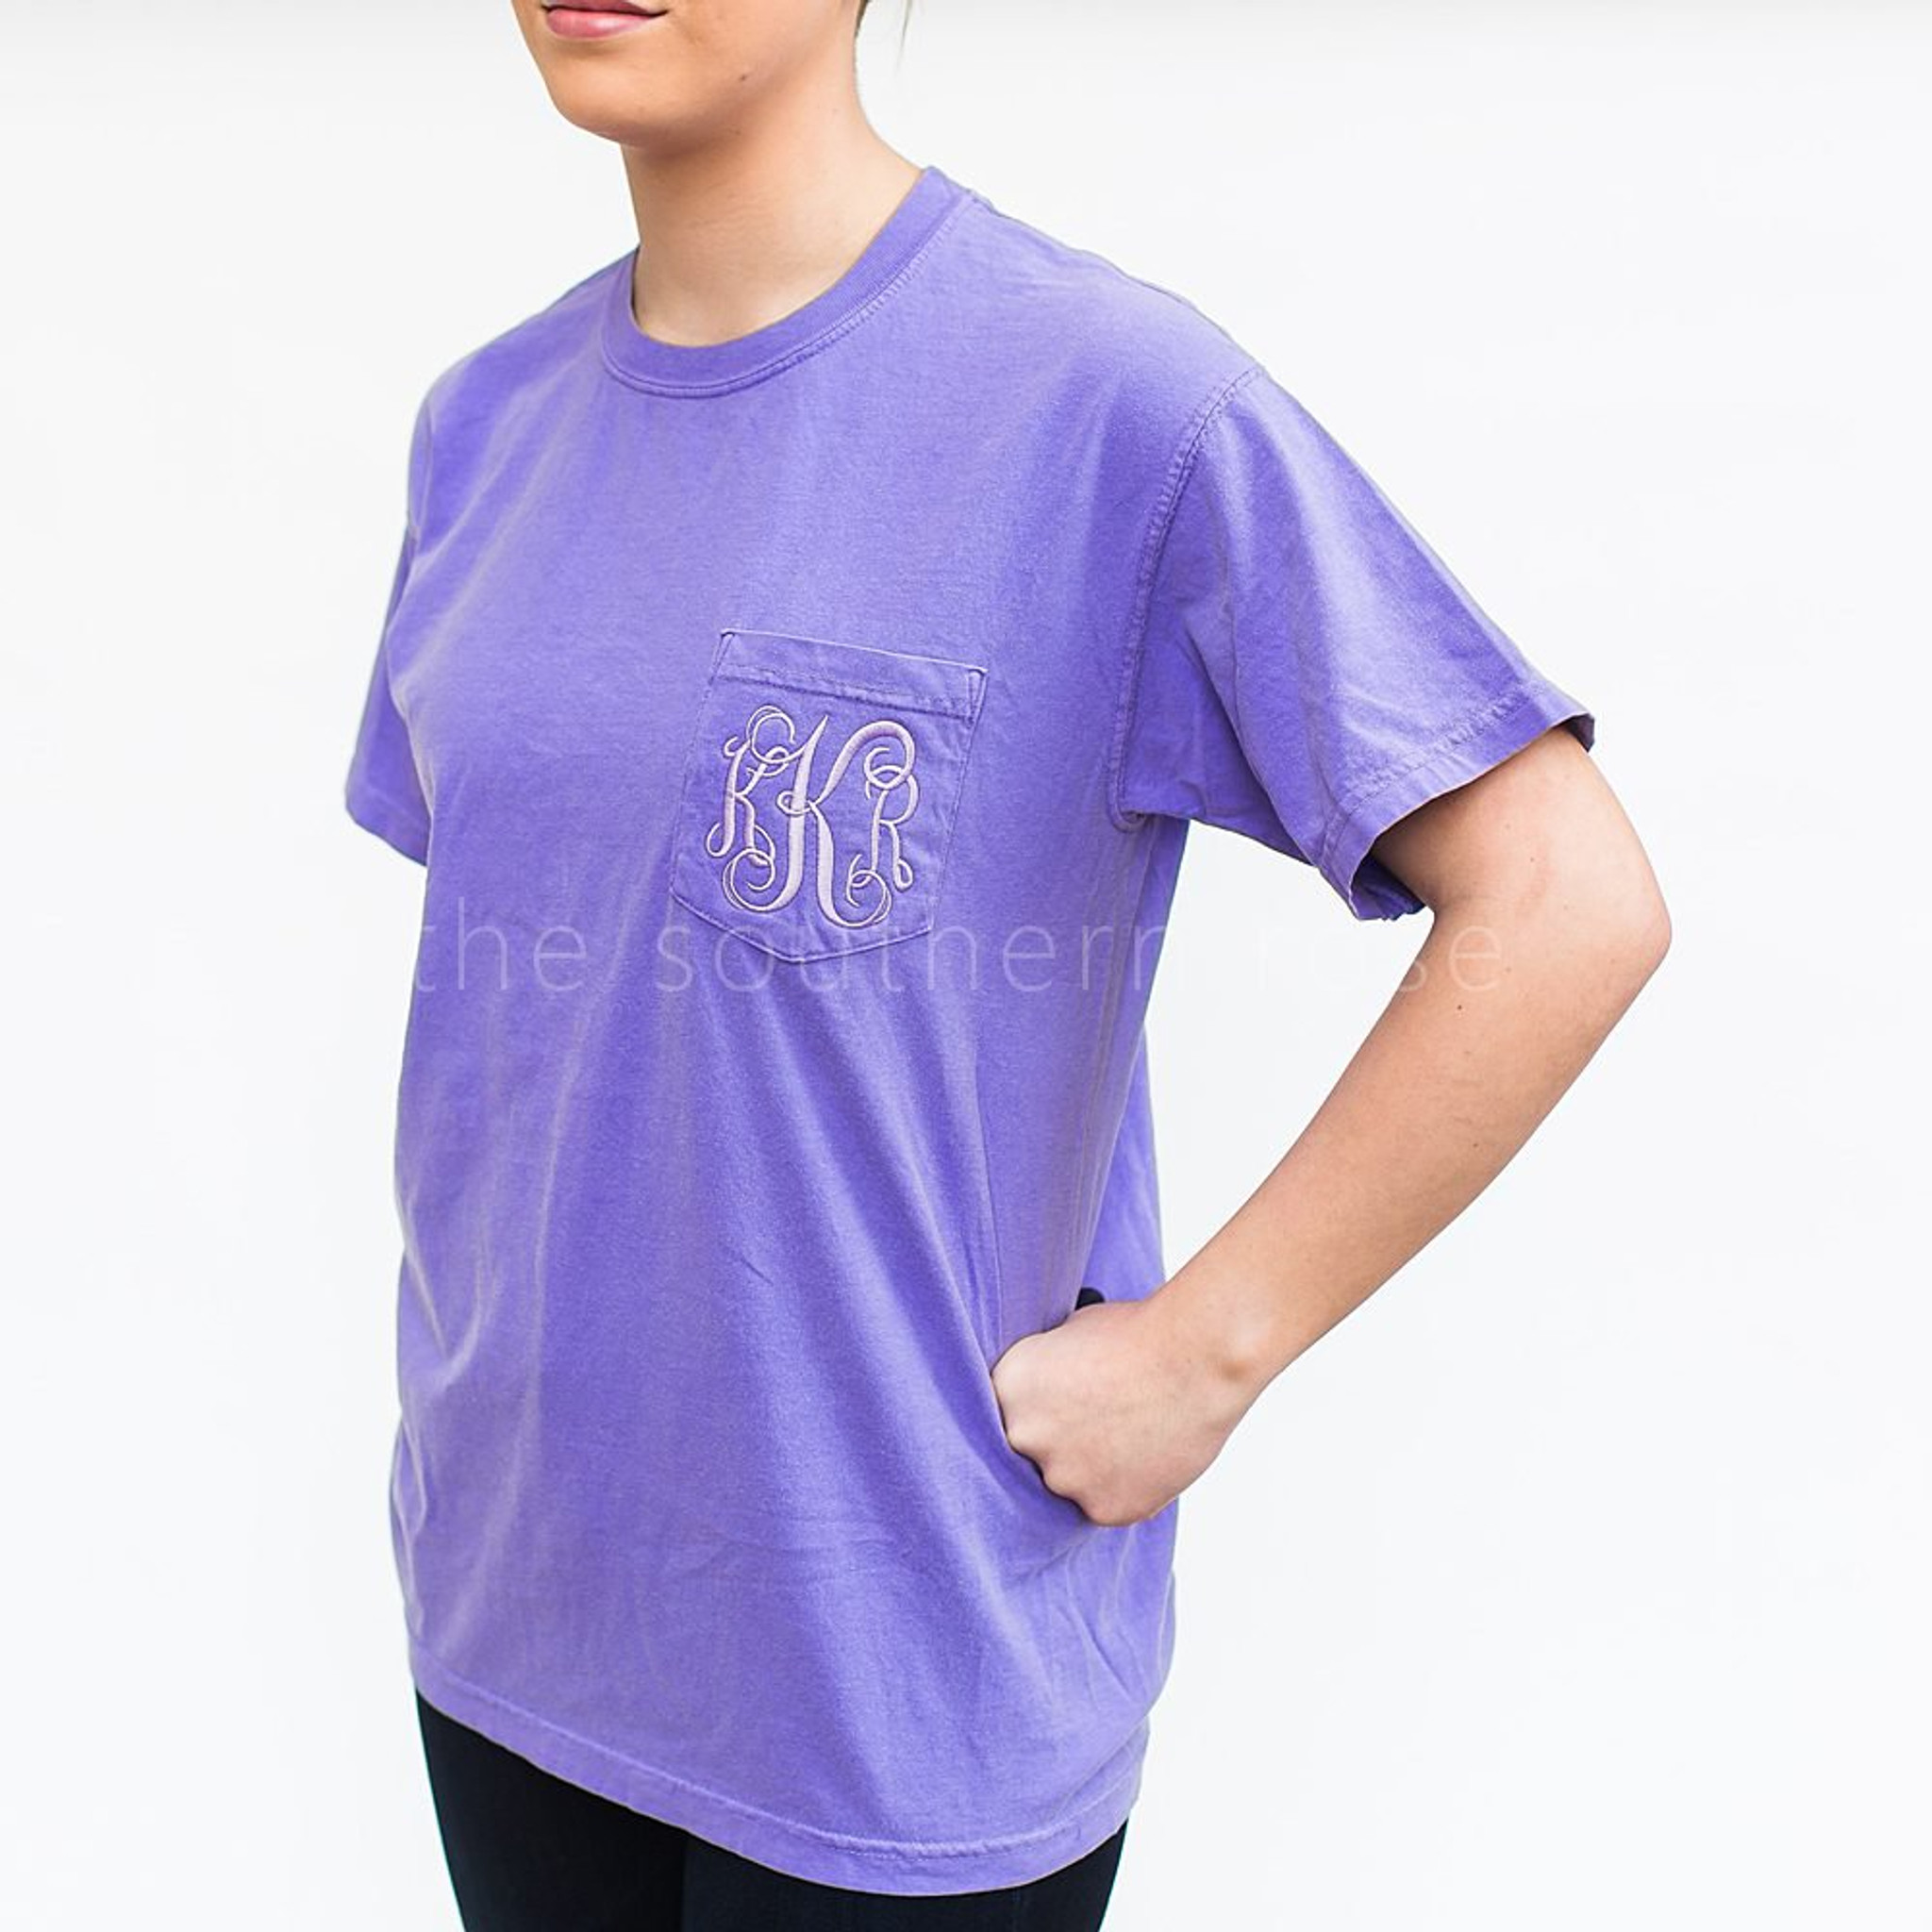 "A girl is wearing a light blue tee shirt with the monogram ""KKR"" in fancy white lettering on the chest pocket."